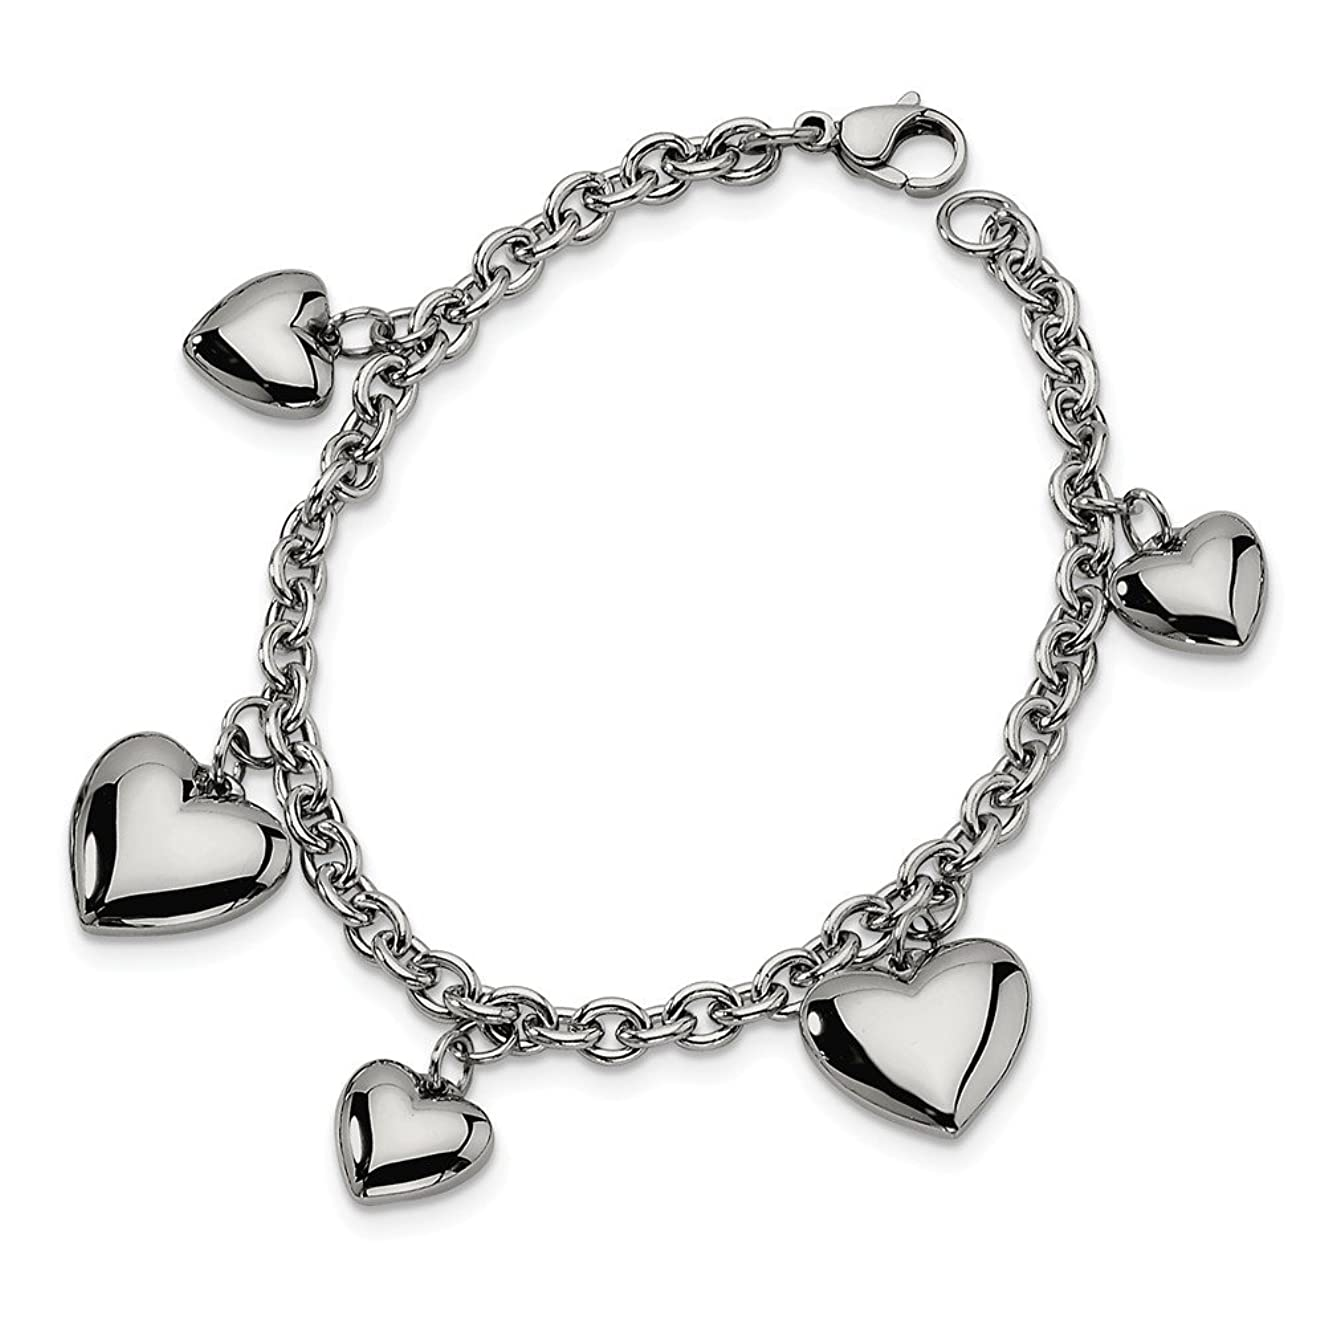 ICE CARATS Stainless Steel Hearts 8 Inch Bracelet/Love Fashion Jewelry Gifts for Women for Her